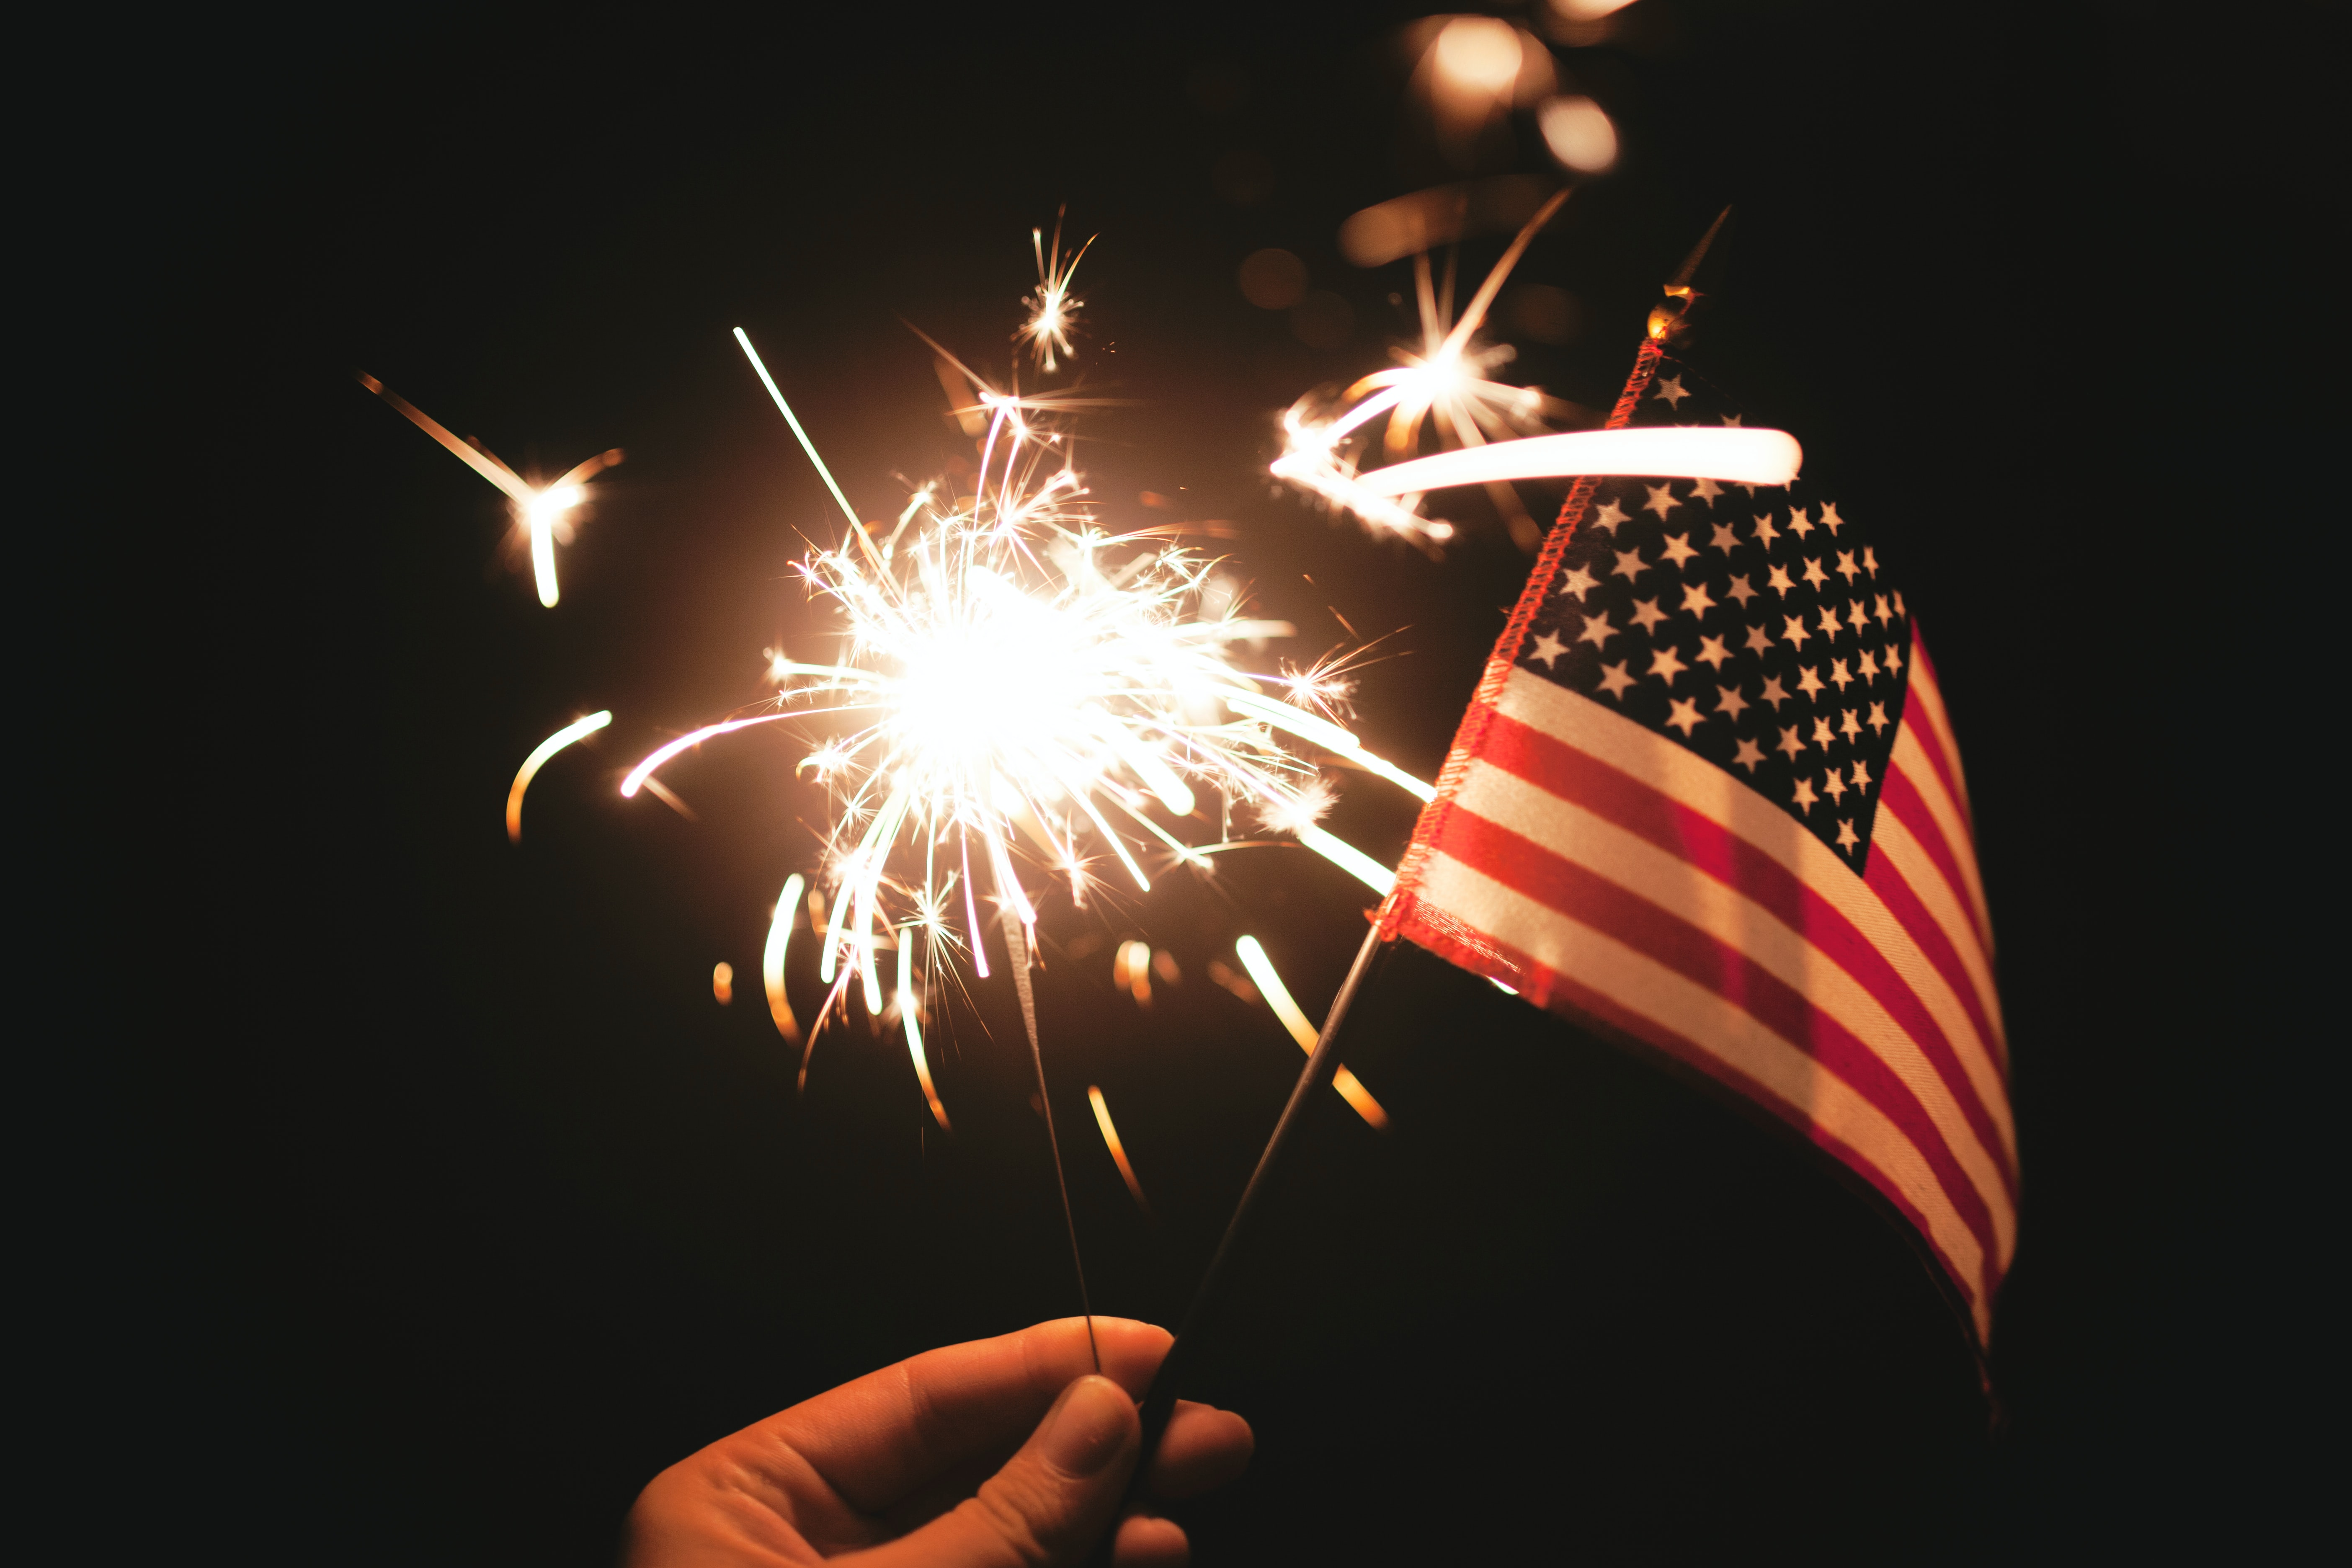 hand holding a sparkler and flag against the night background